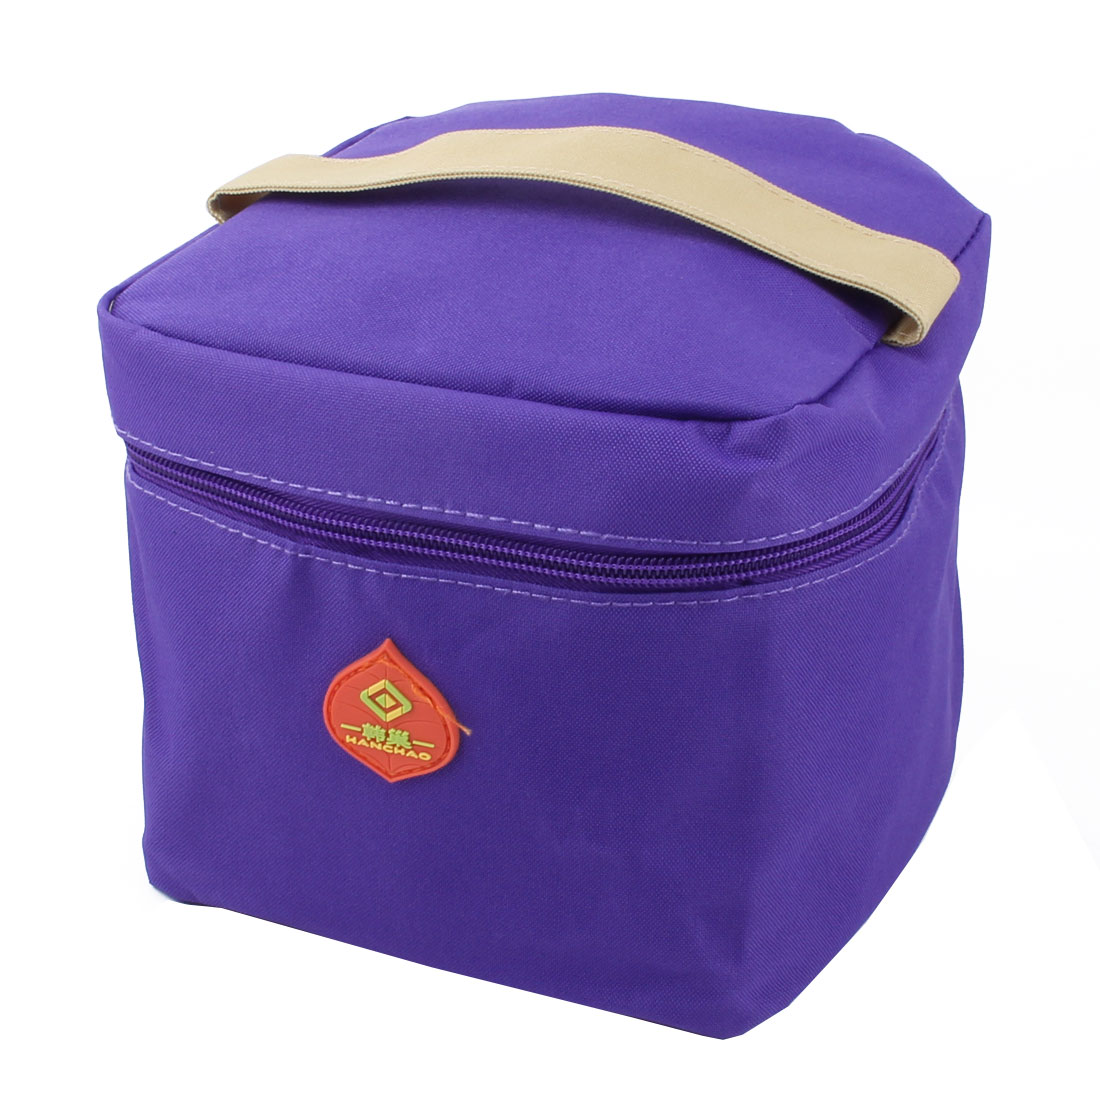 Office School Portable Thermal Insulated Cooler Bag Lunch Pouch Container Purple